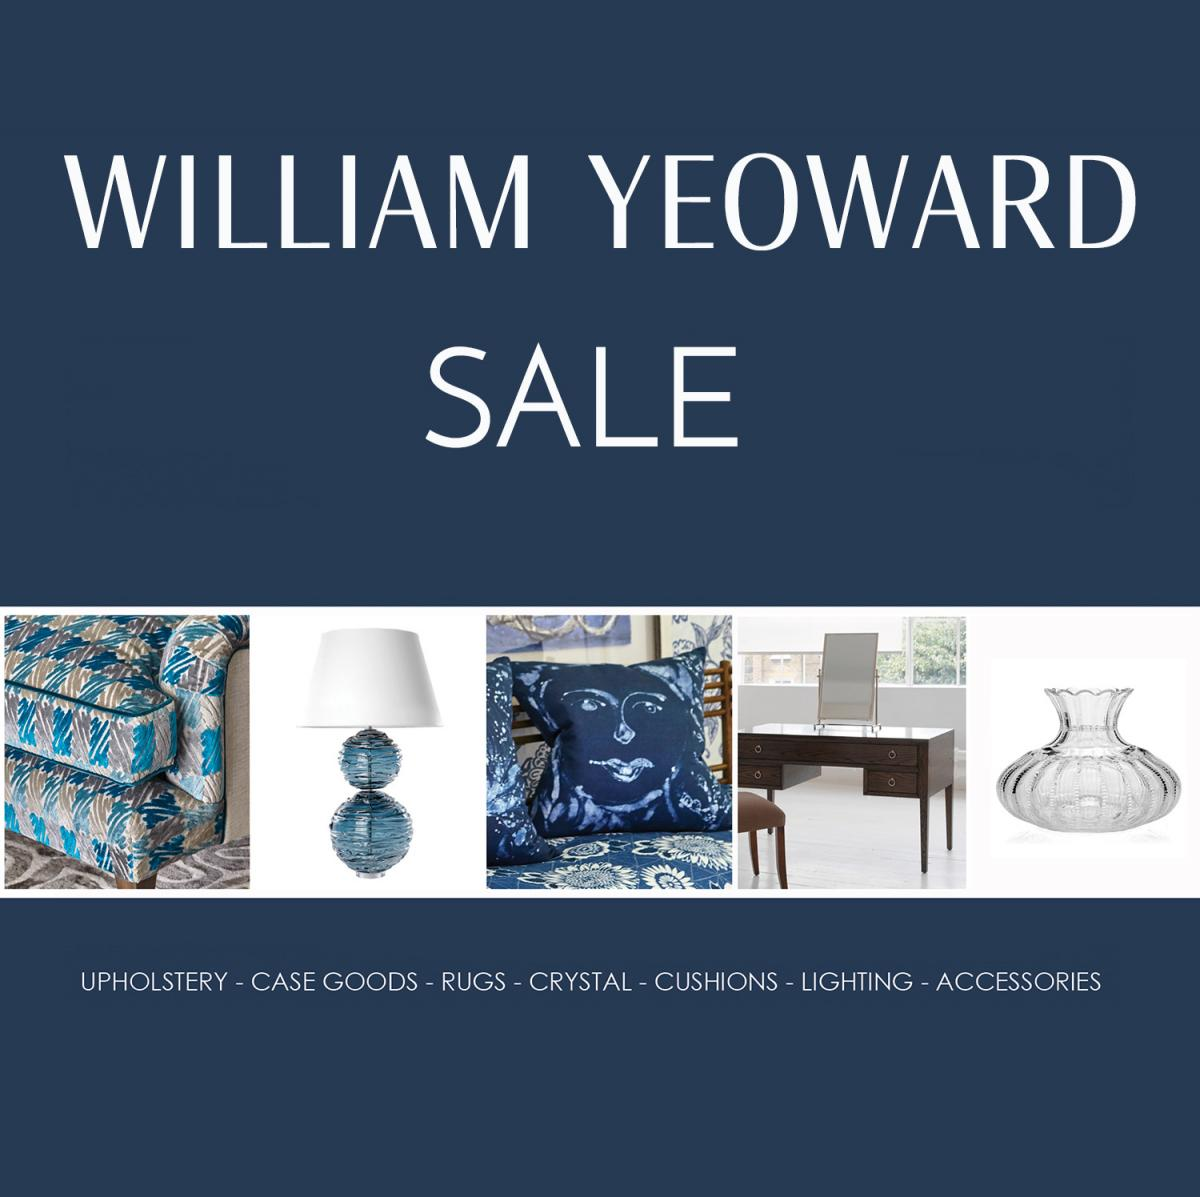 We are having a SALE!